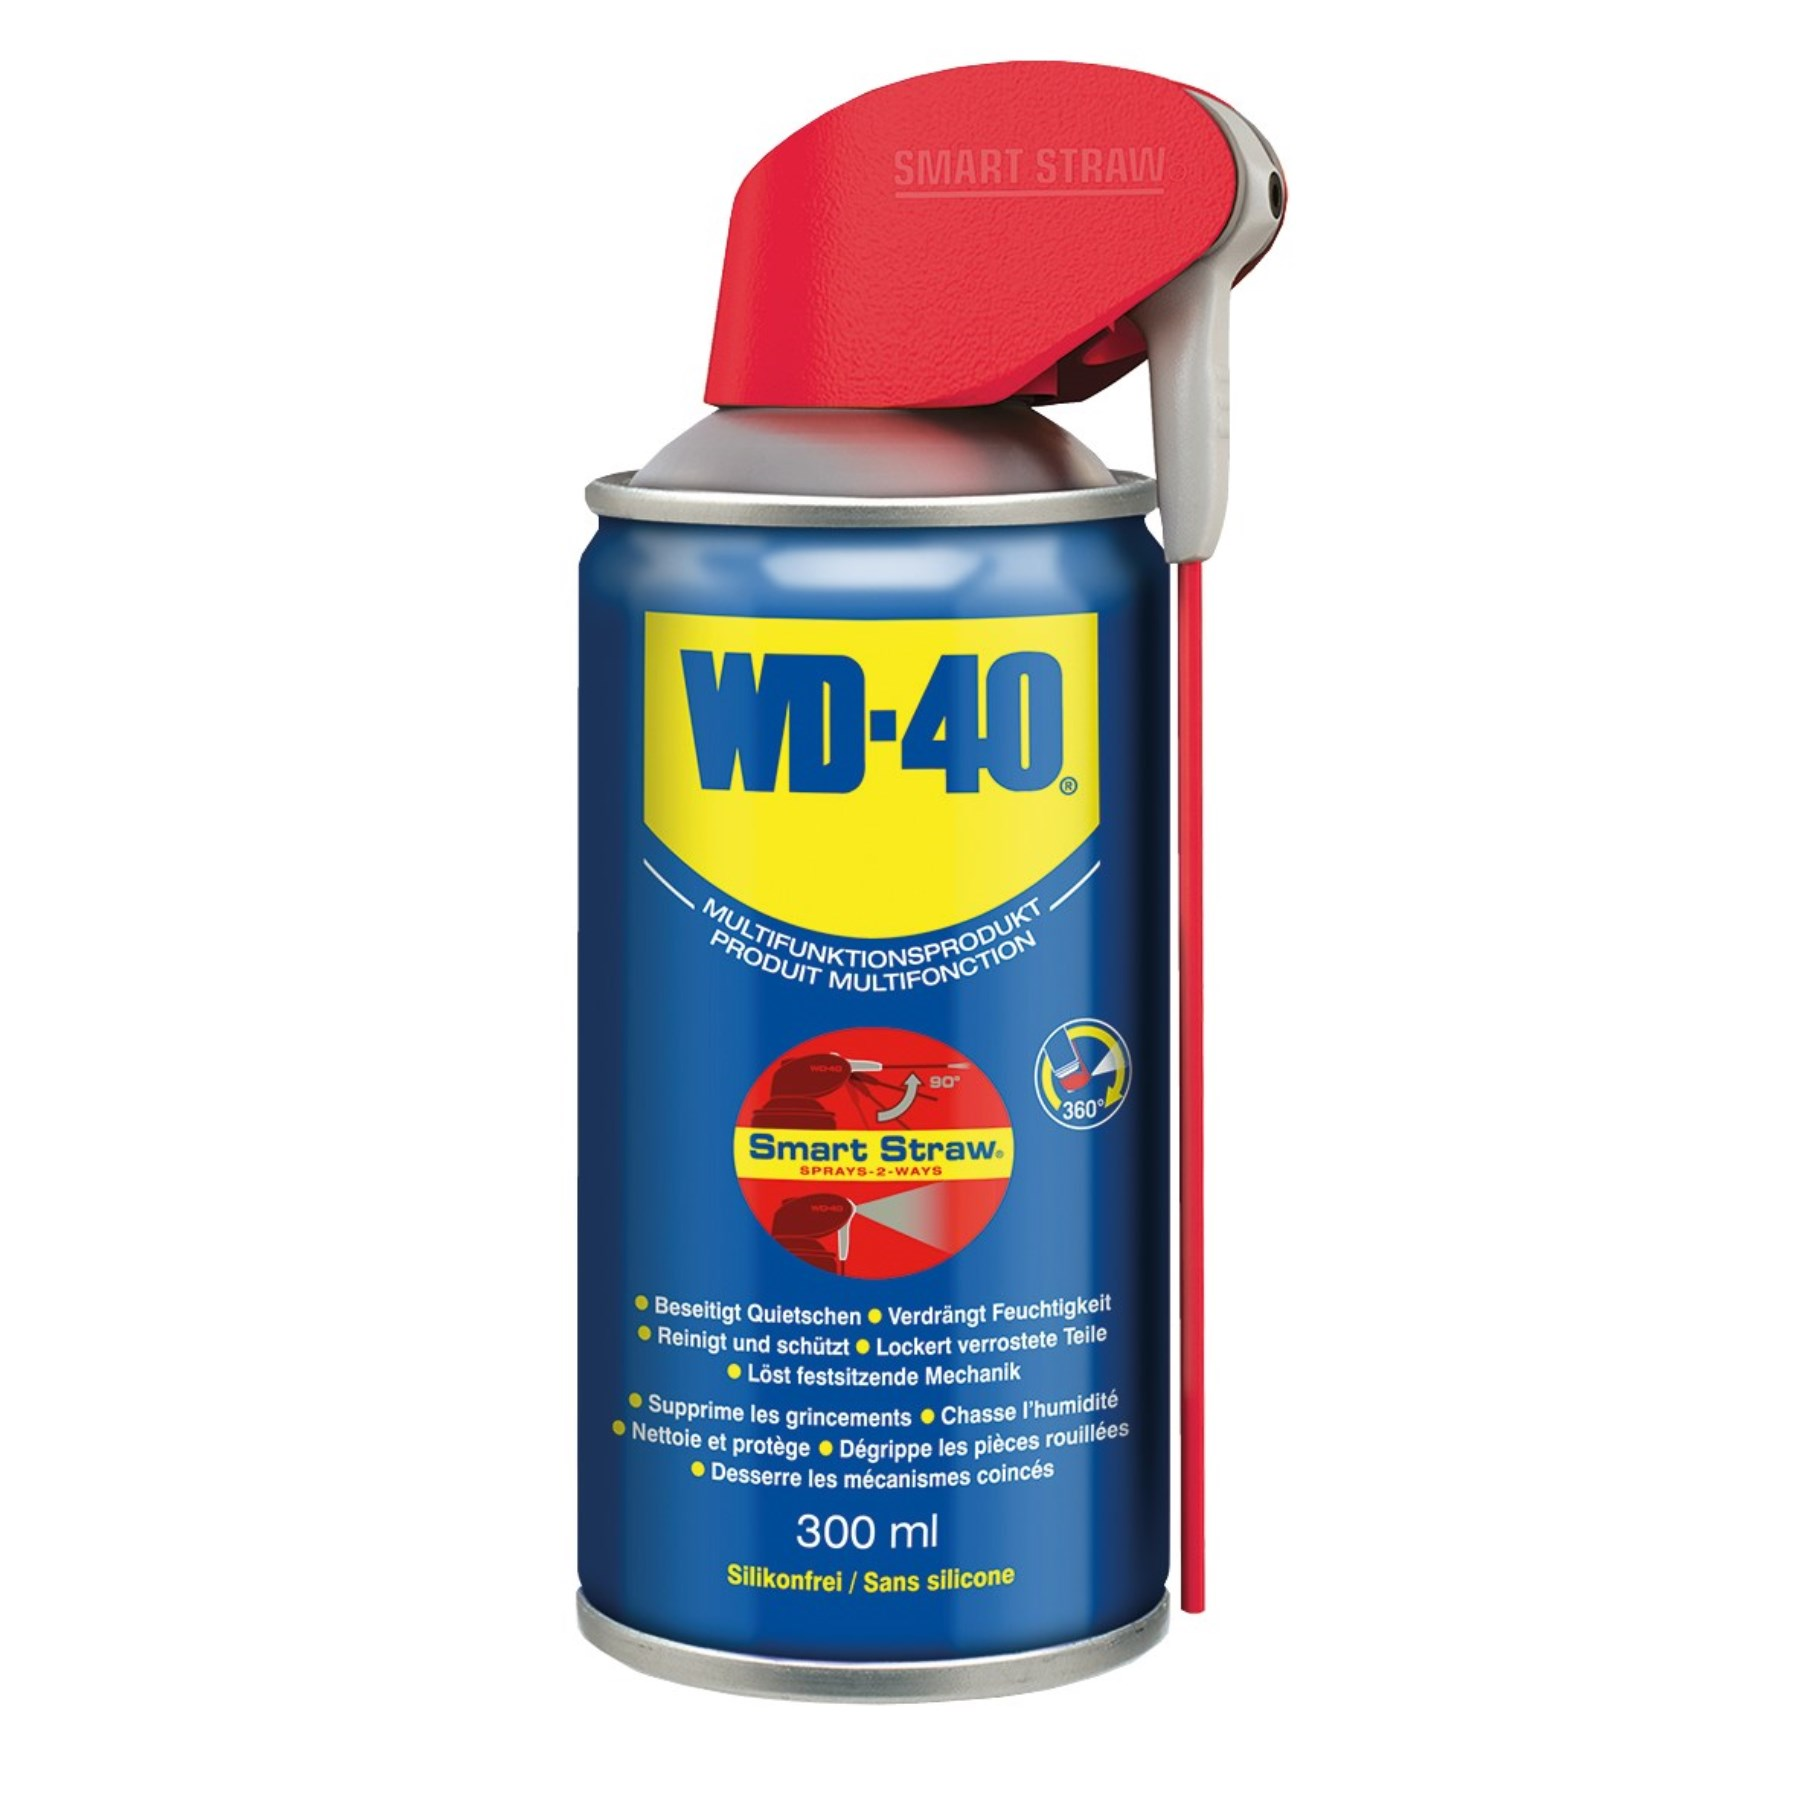 1258843 - WD-40 Multifunktionsspray